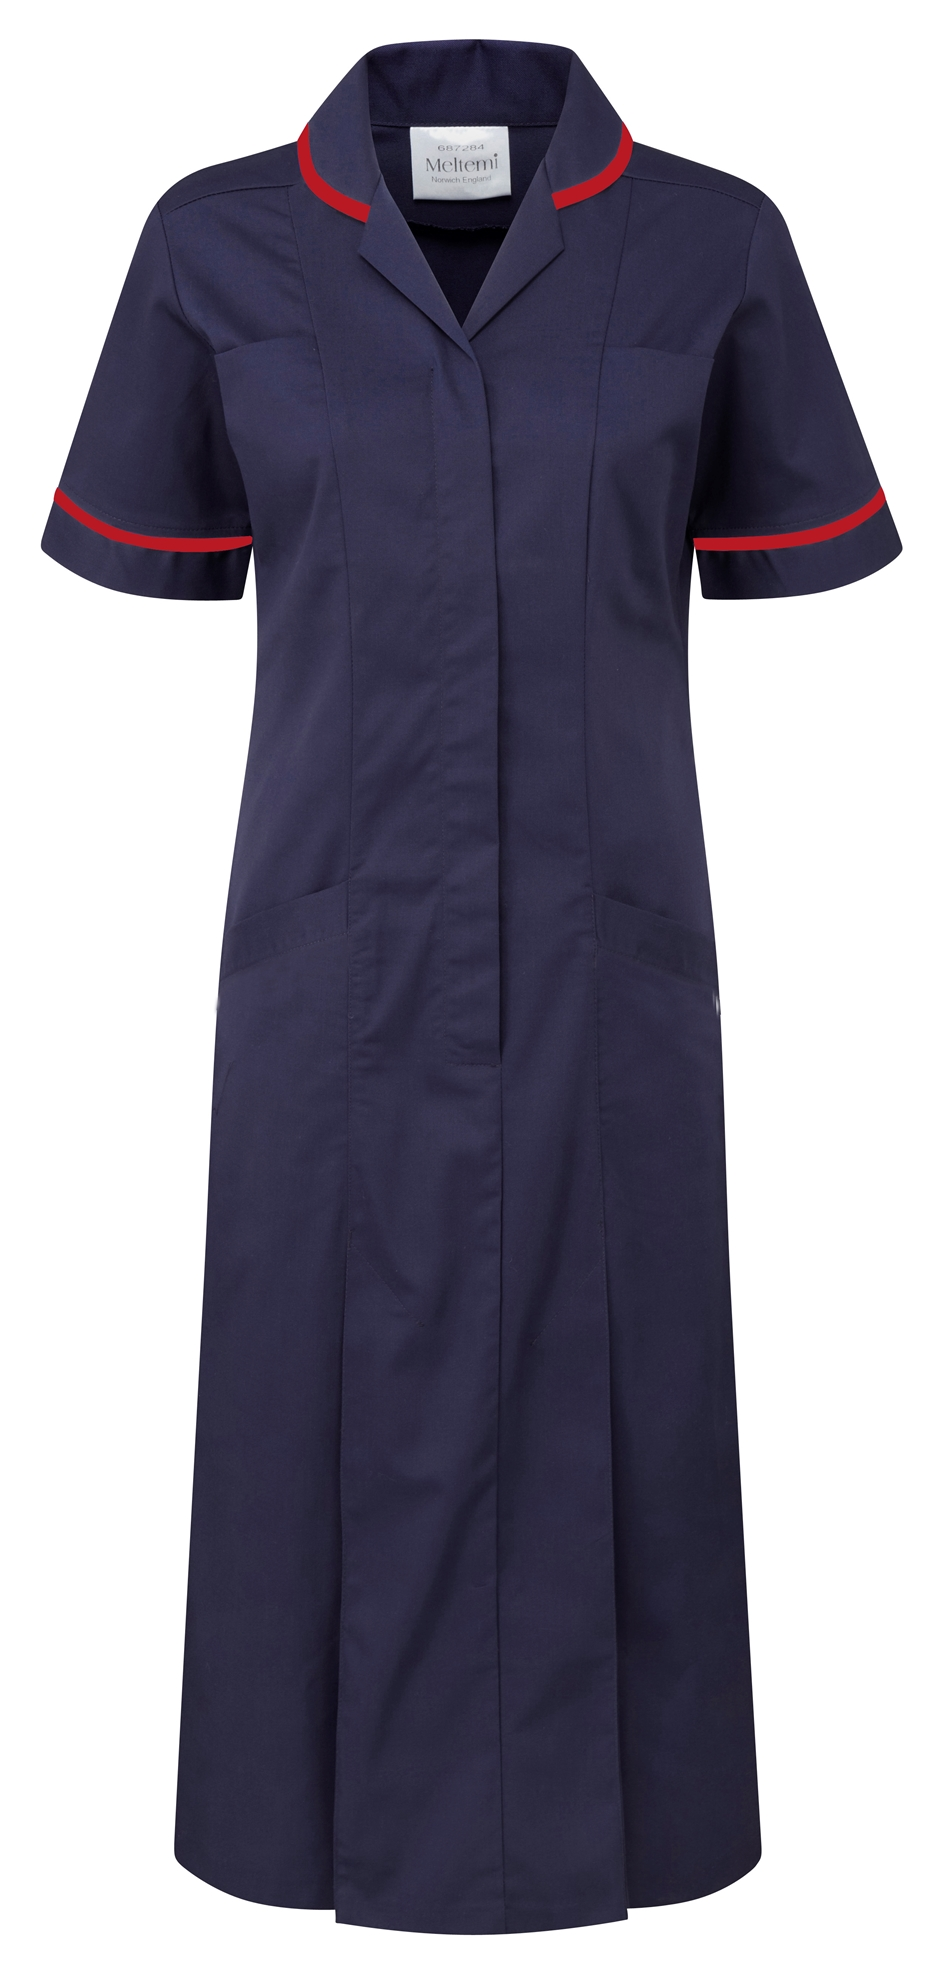 Picture of Plain Colour Dress - Navy/Red